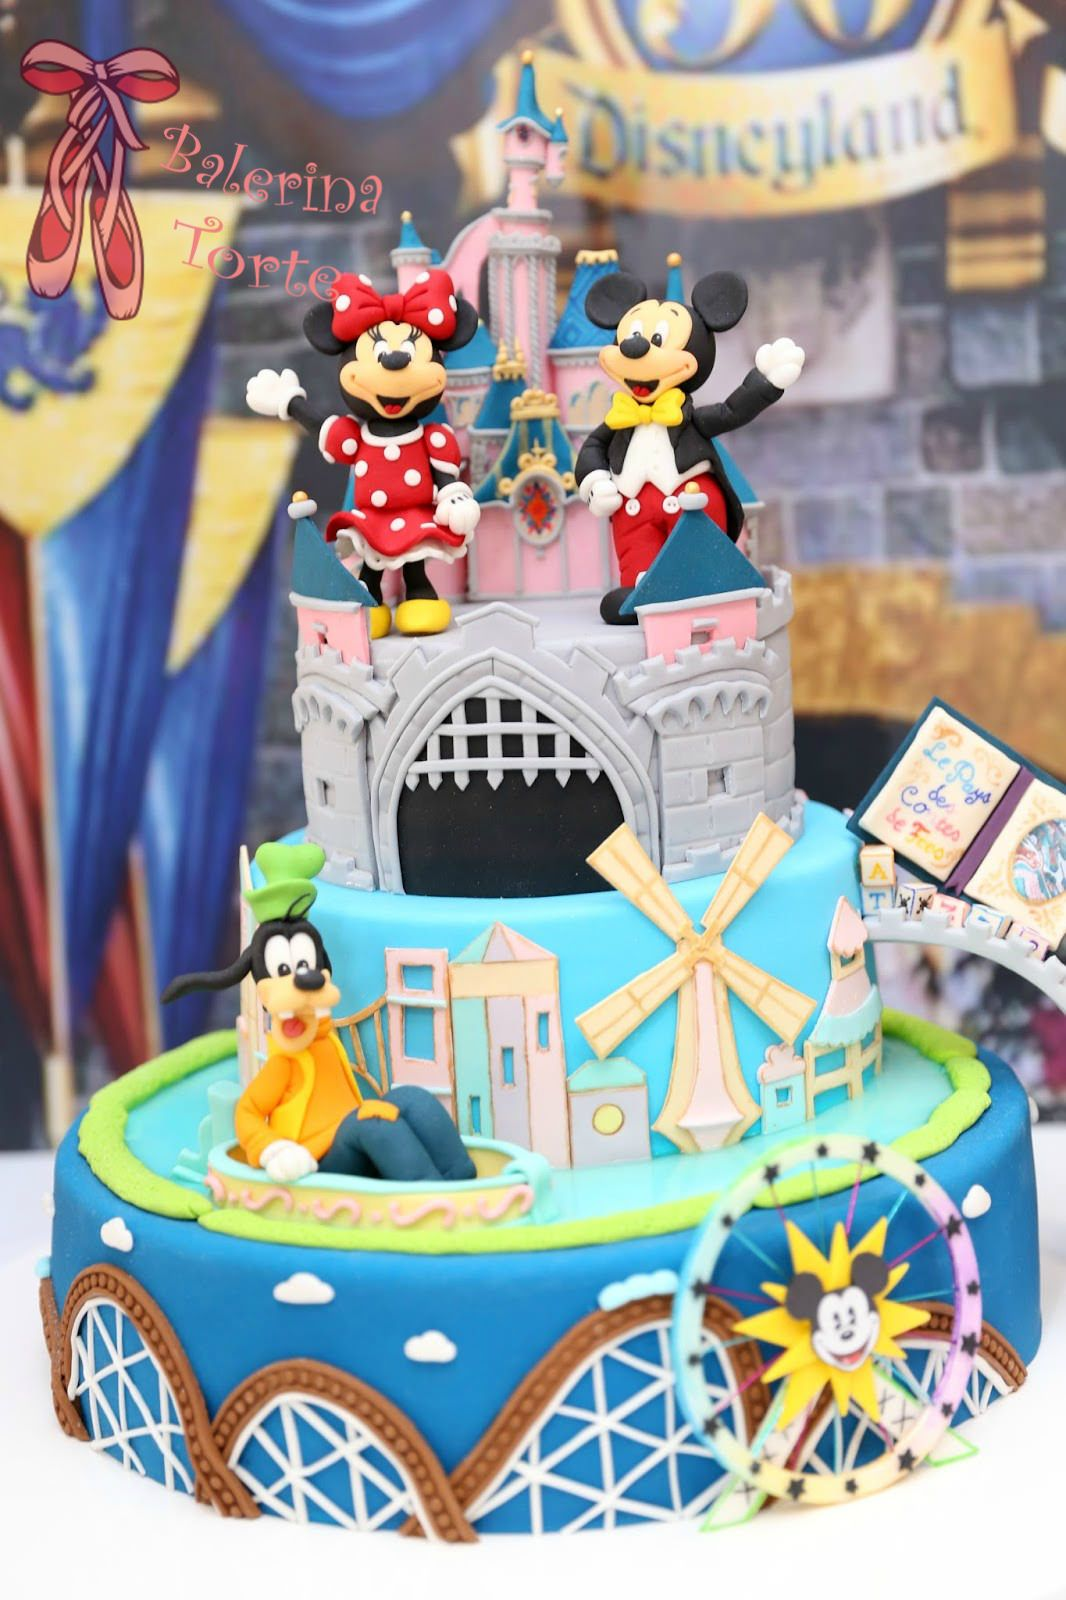 Astonishing Disneyland Cake Diznilend Torta By Balerina Torte Jagodina Personalised Birthday Cards Veneteletsinfo